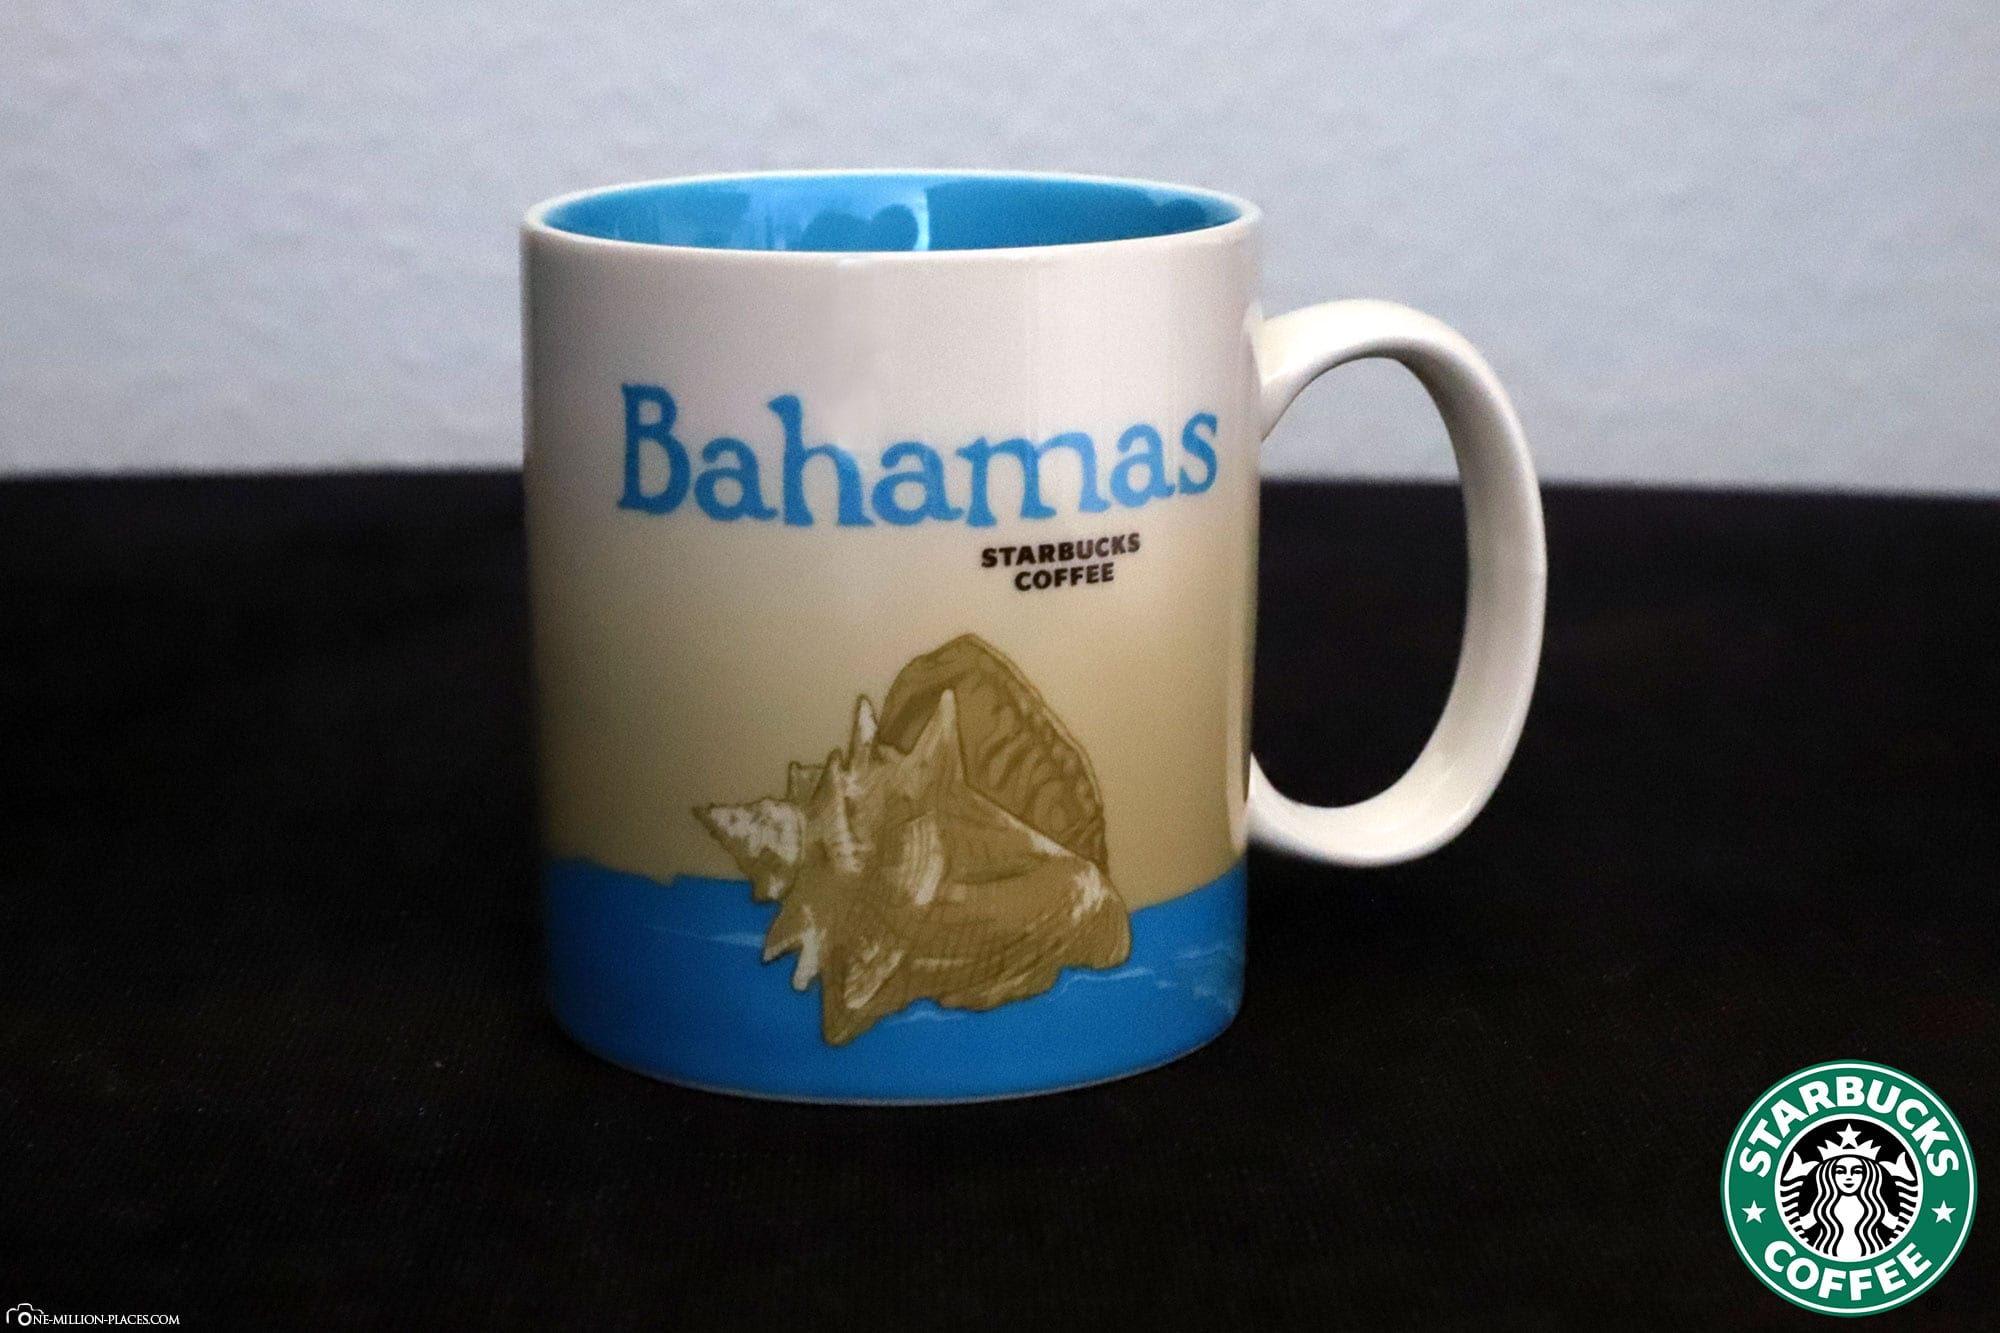 Bahamas, Starbucks Cup, Global Icon Series, City Mugs, Collection, Travelreport